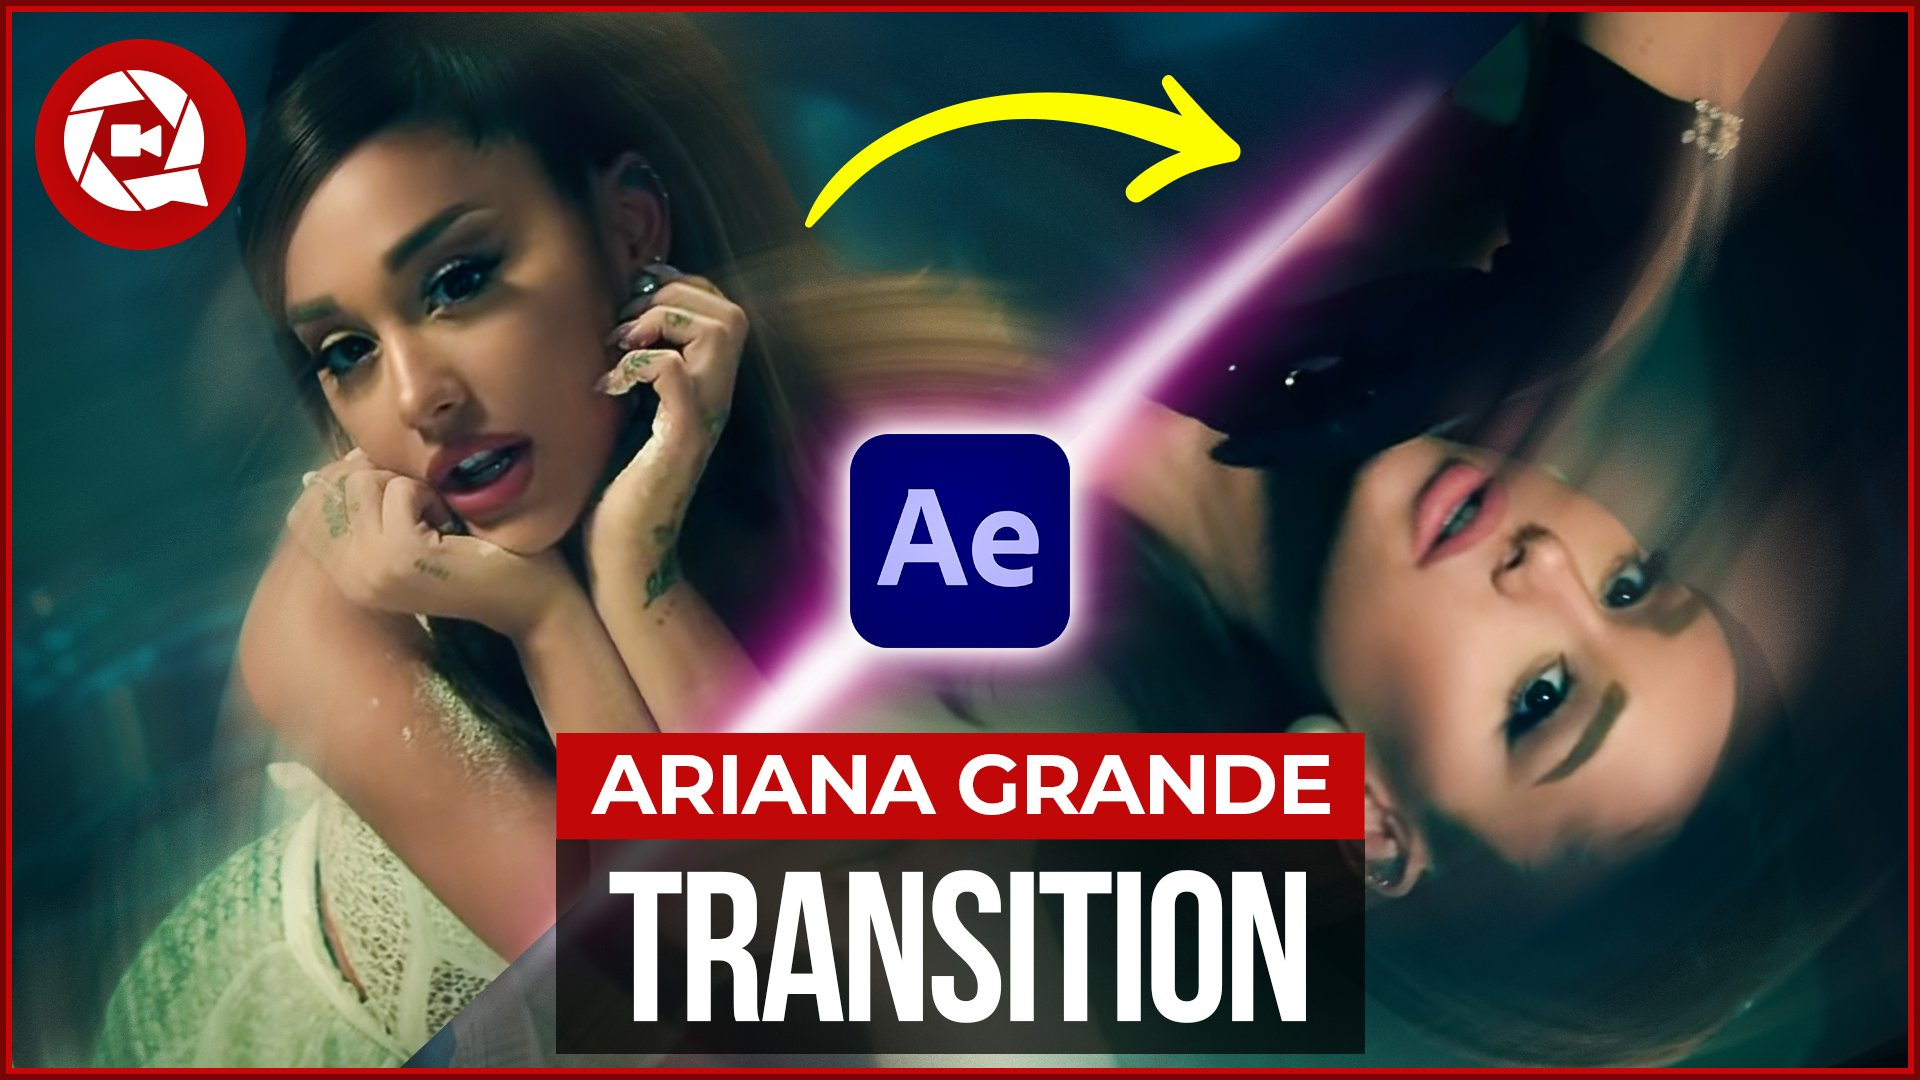 Ariana Grande Rotation Transition